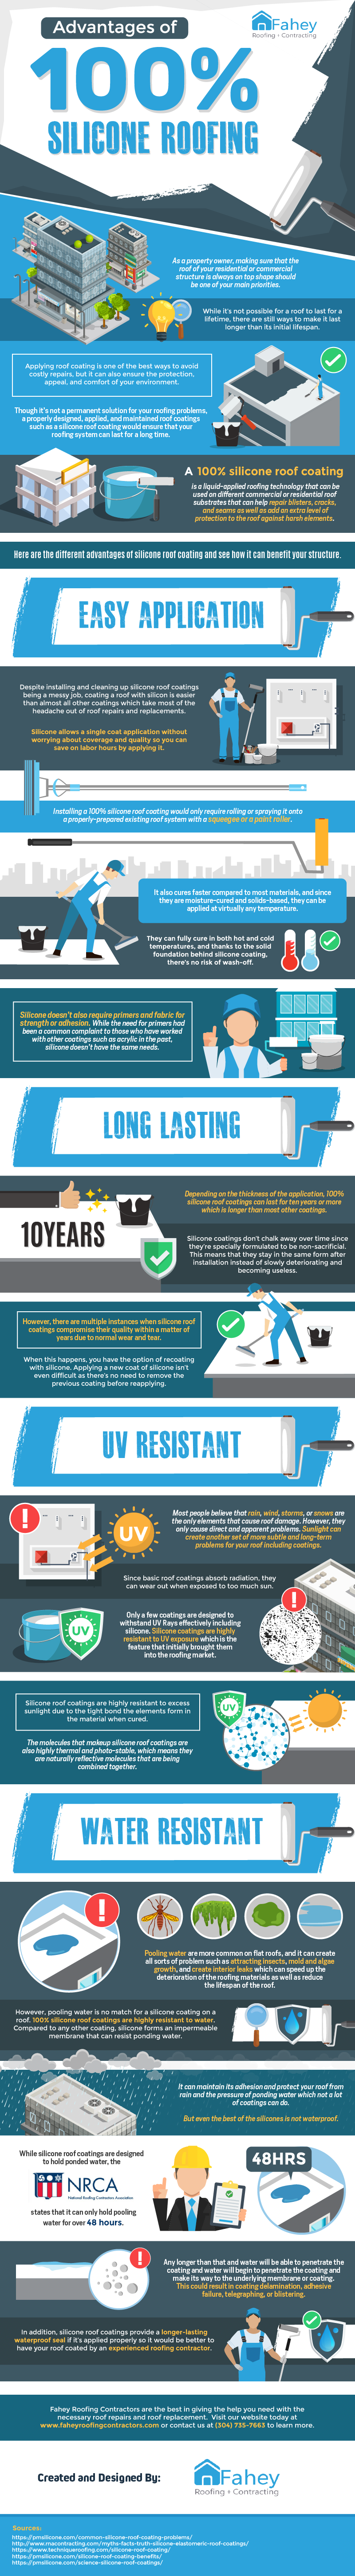 Advantages of 100% Silicone Roofing (Infographics)